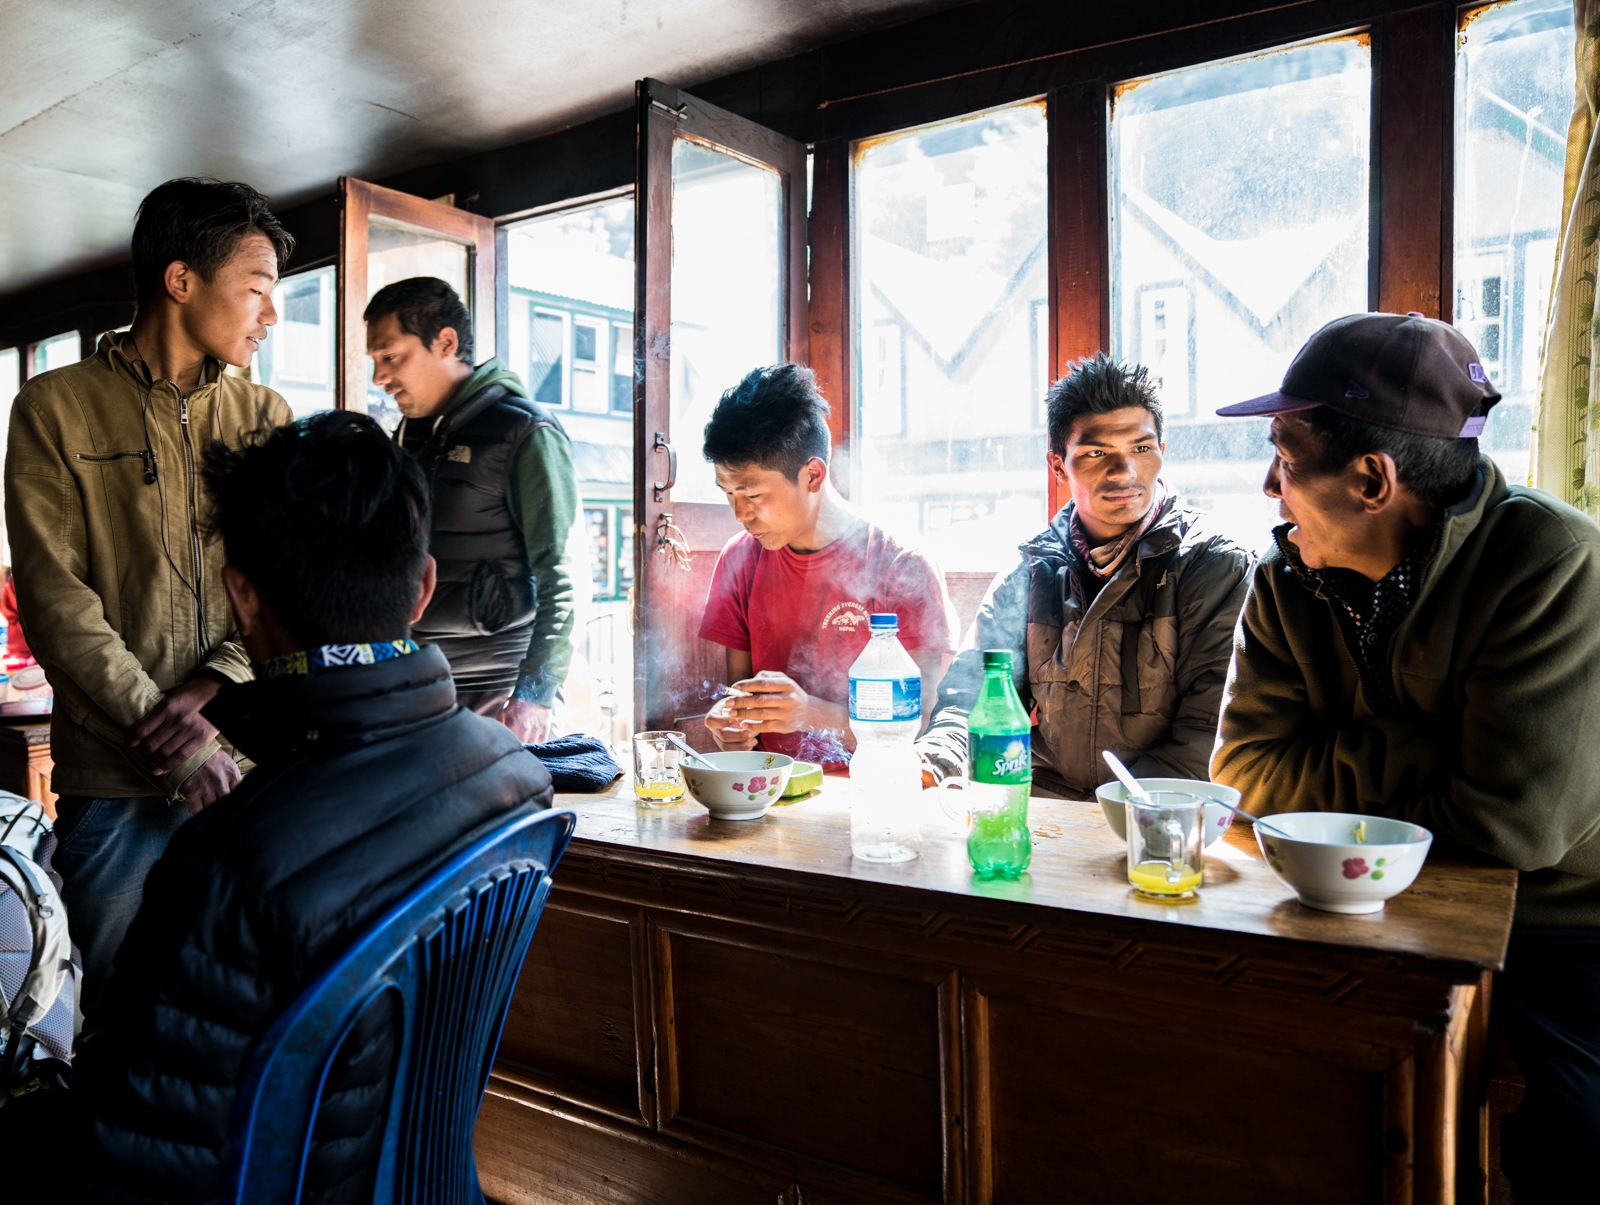 A tea and noodle stop for local porters and guides. These restaurants are separate from the tourist lodges where prices are extremely high and aimed only at foreigners.